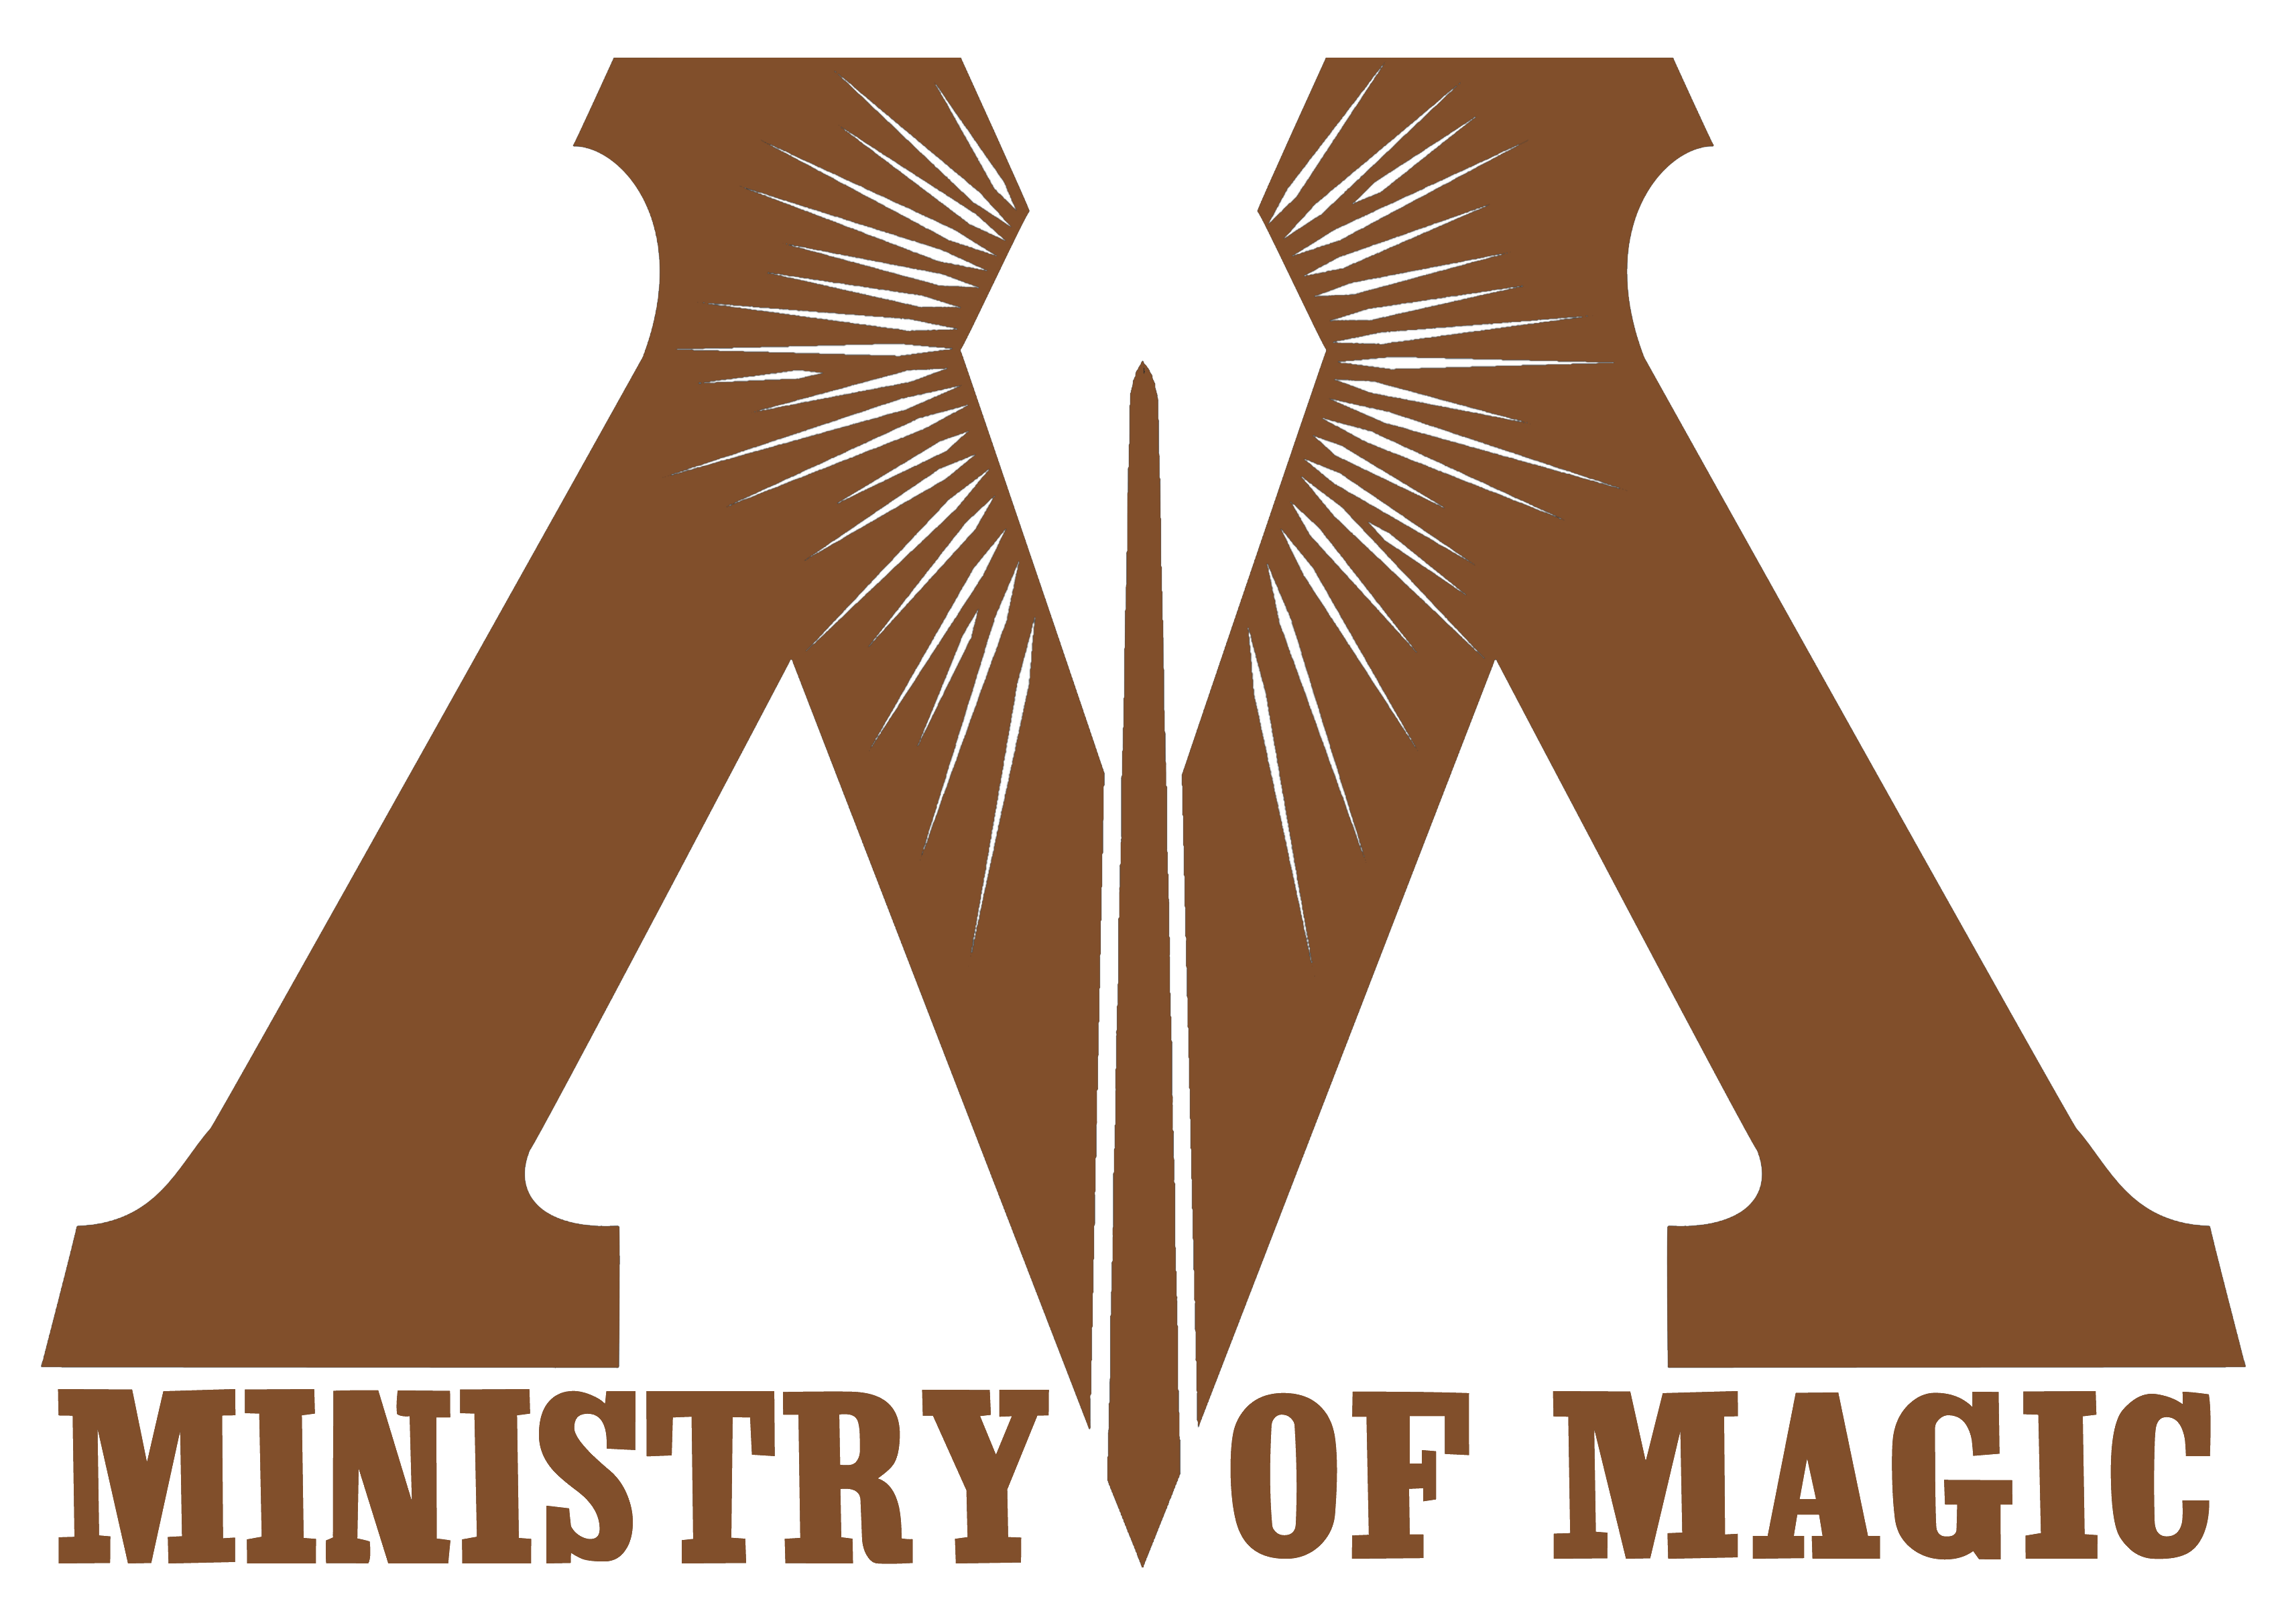 Ministry of magic logo png. Image harry potter wiki